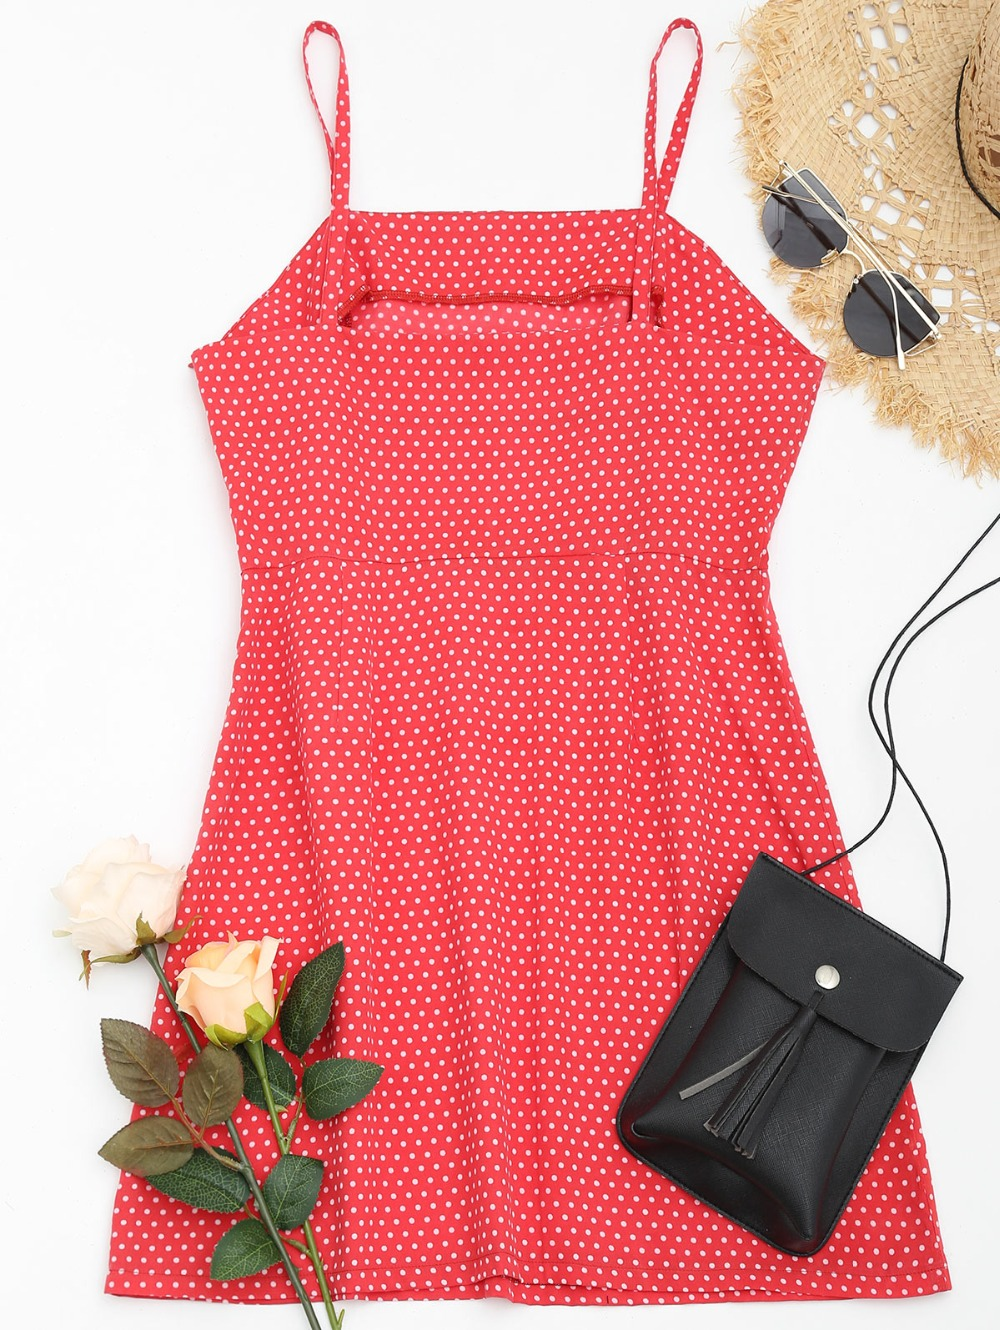 AZULINA Polka Dot Spaghetti Strap Summer Cami Dress Women Casual Brief A Line Red Mini Dress Vestidos De Festa Ladies Sundress 8